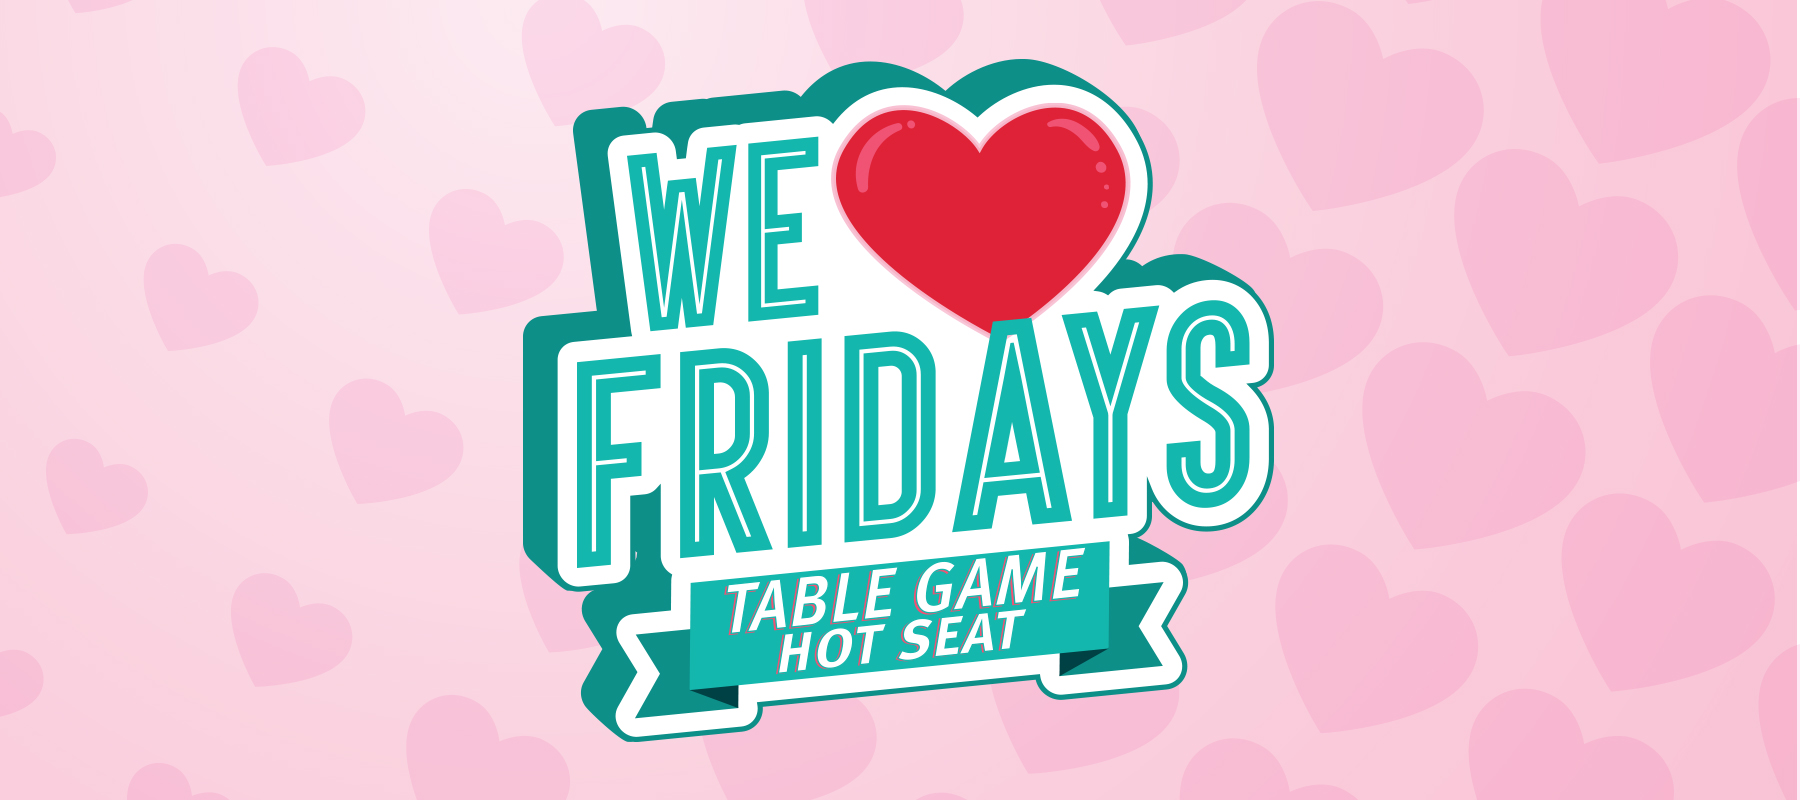 We Heart Fridays Table Game Hot Seat